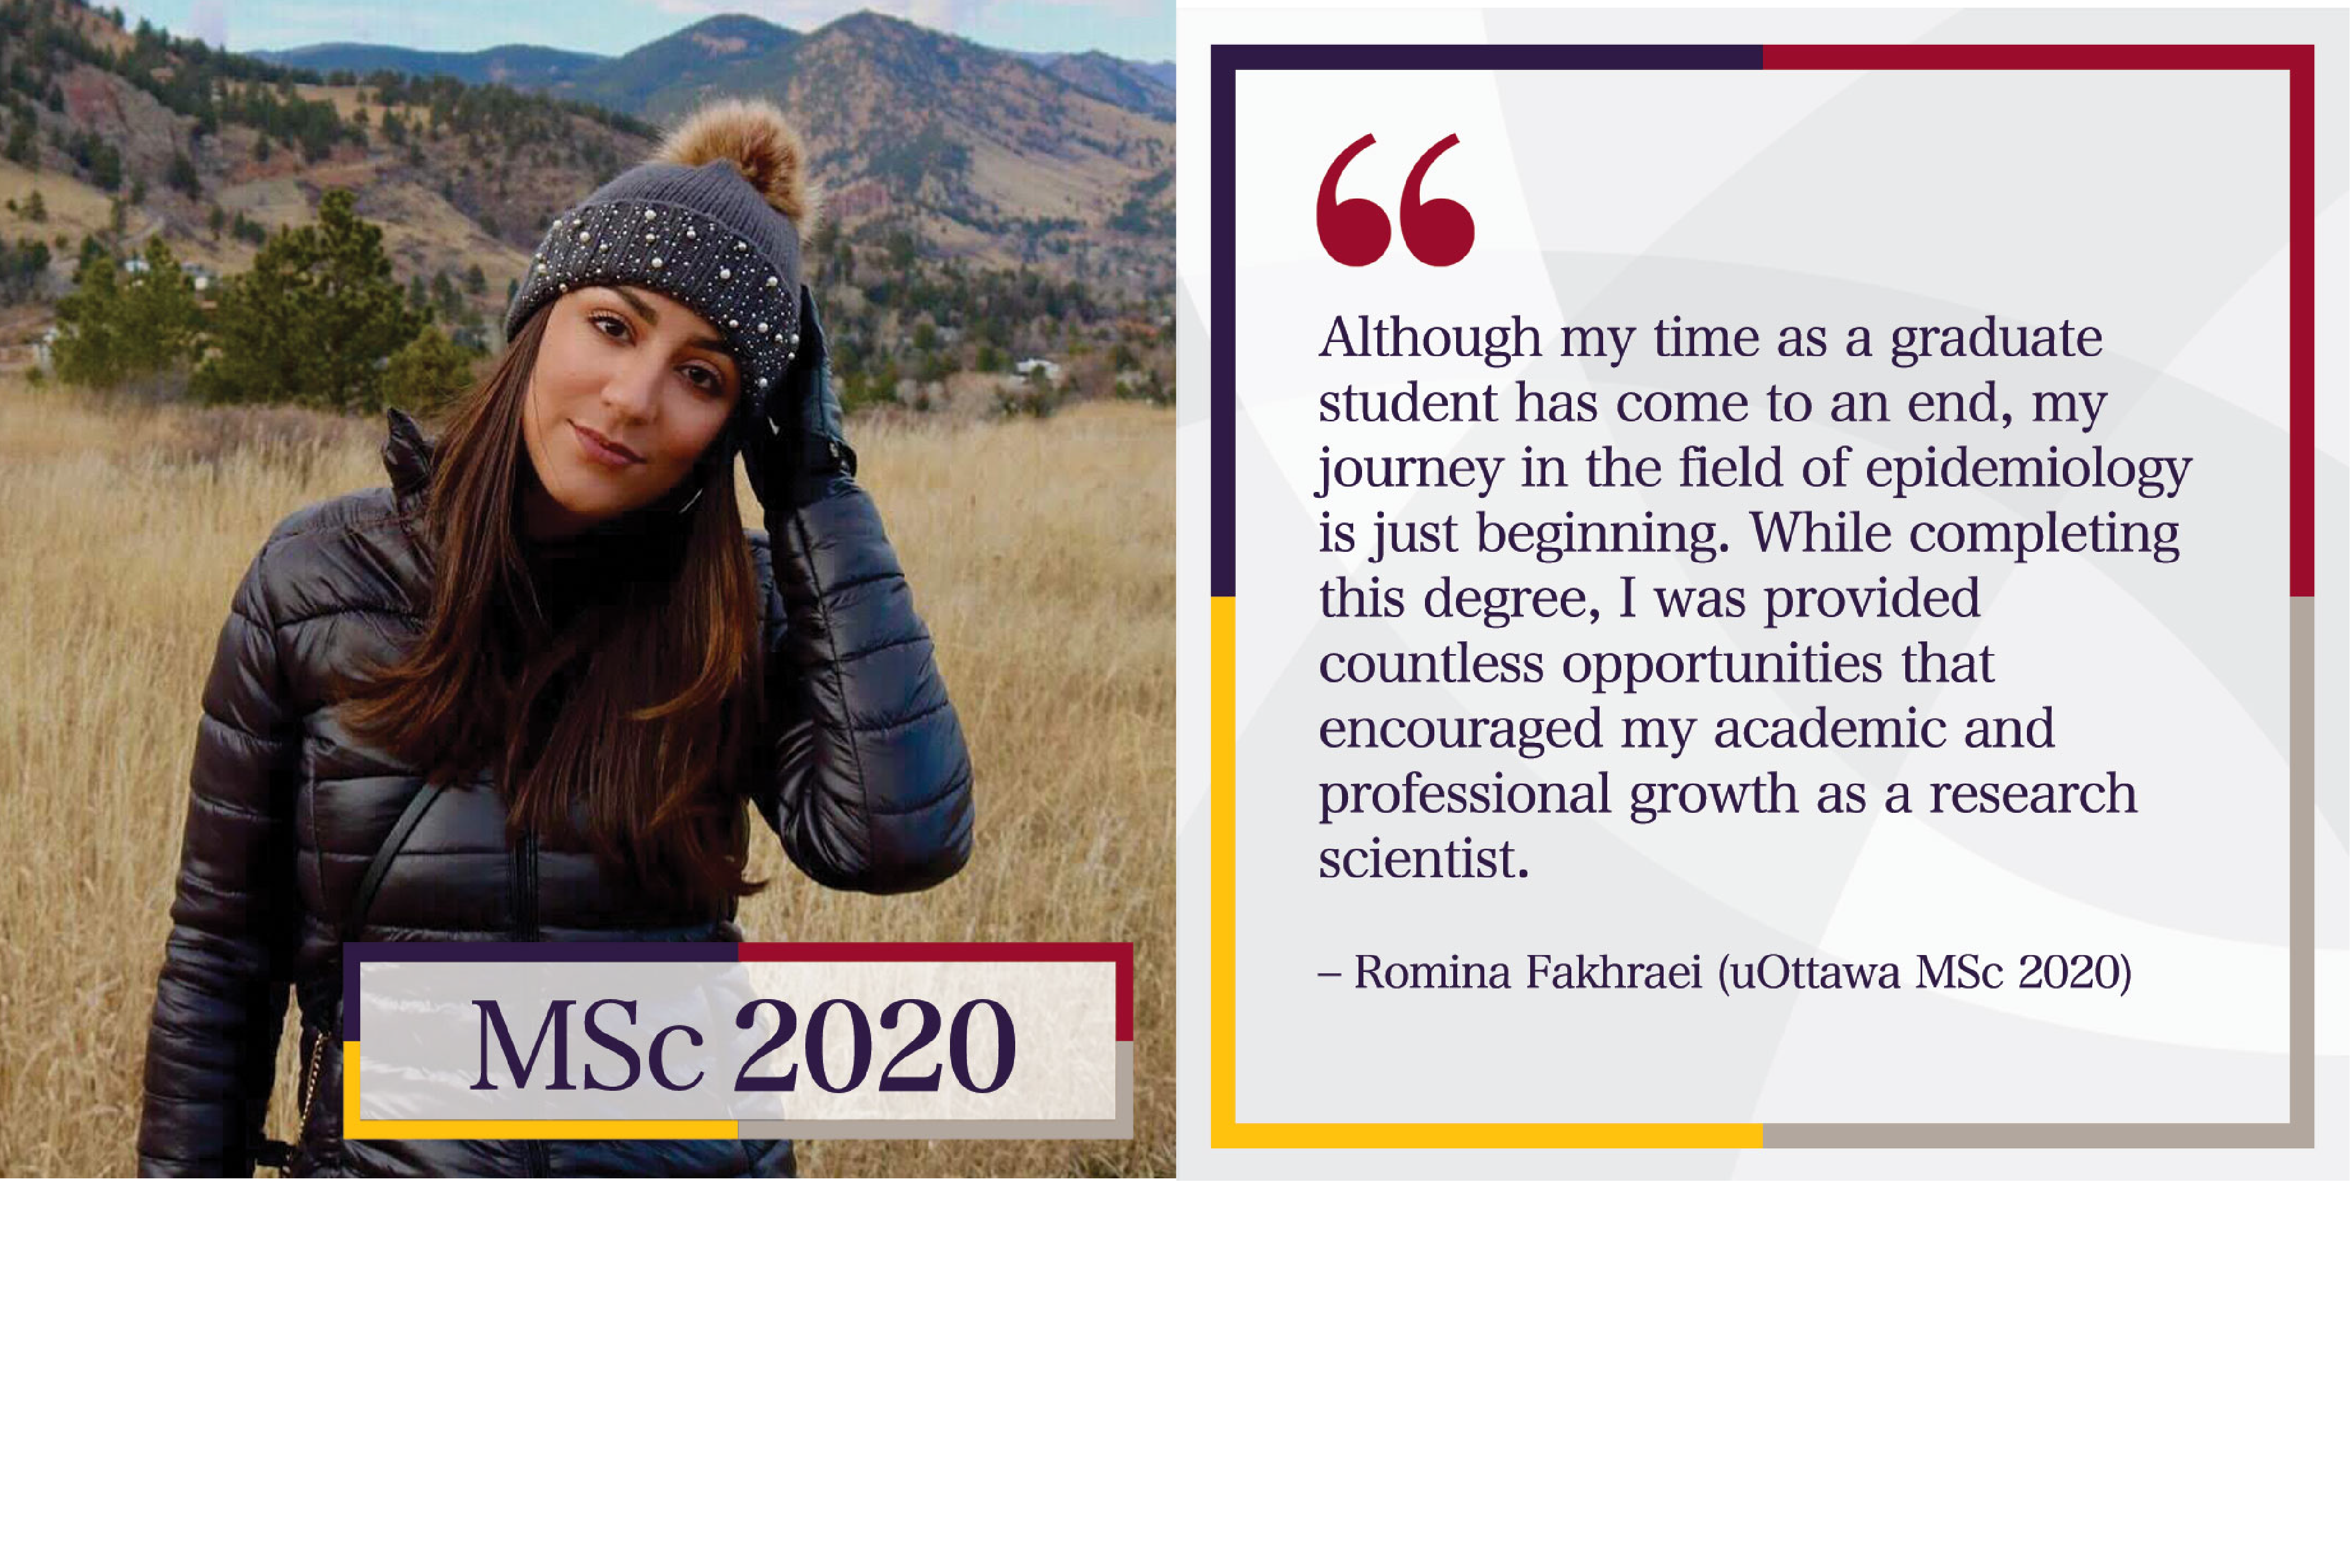 Photo of Romina Fakhraie with quote